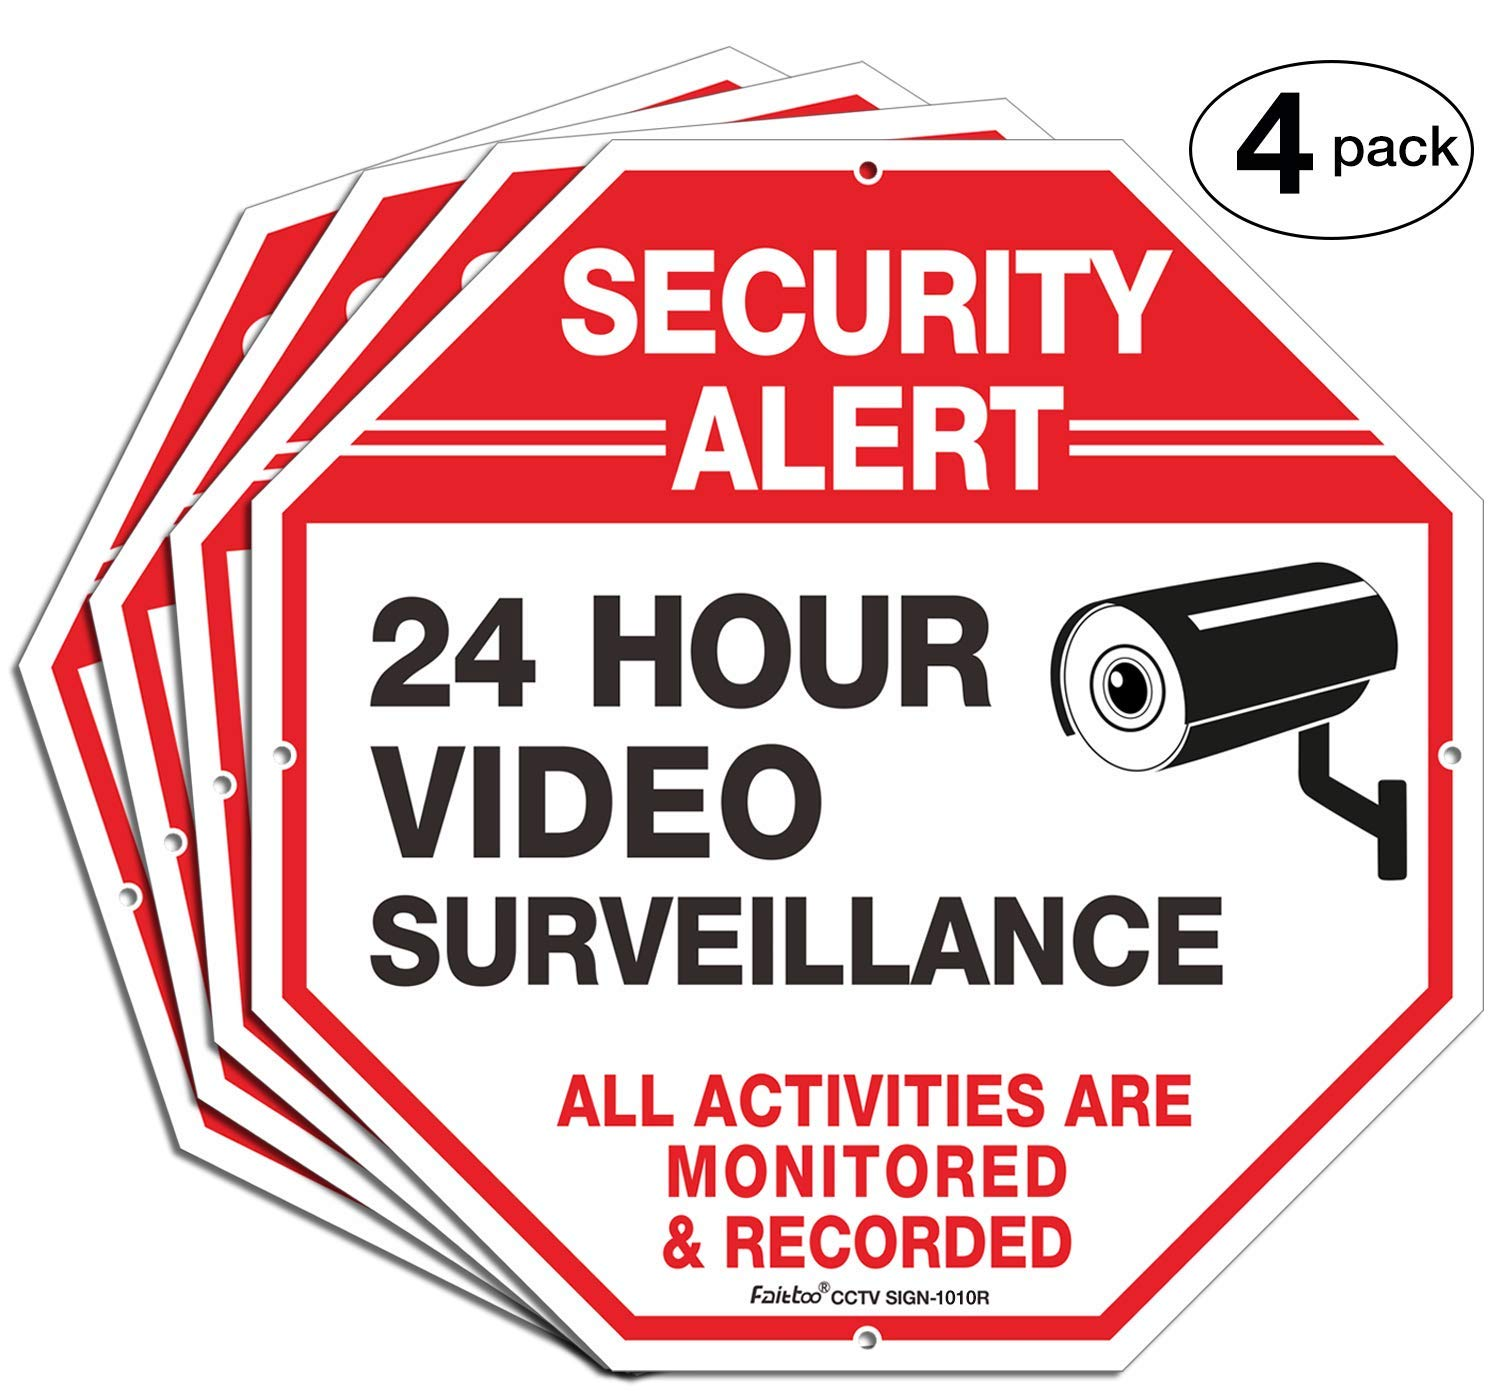 (4 Pack)''Security Alert, 24 Hour Video Surveillance, All Activities Monitored'' Signs,10x10 Inches .040 Aluminum Reflective Warning Sign for Home Business CCTV Security Camera, Indoor or Outdoor Use by Faittoo